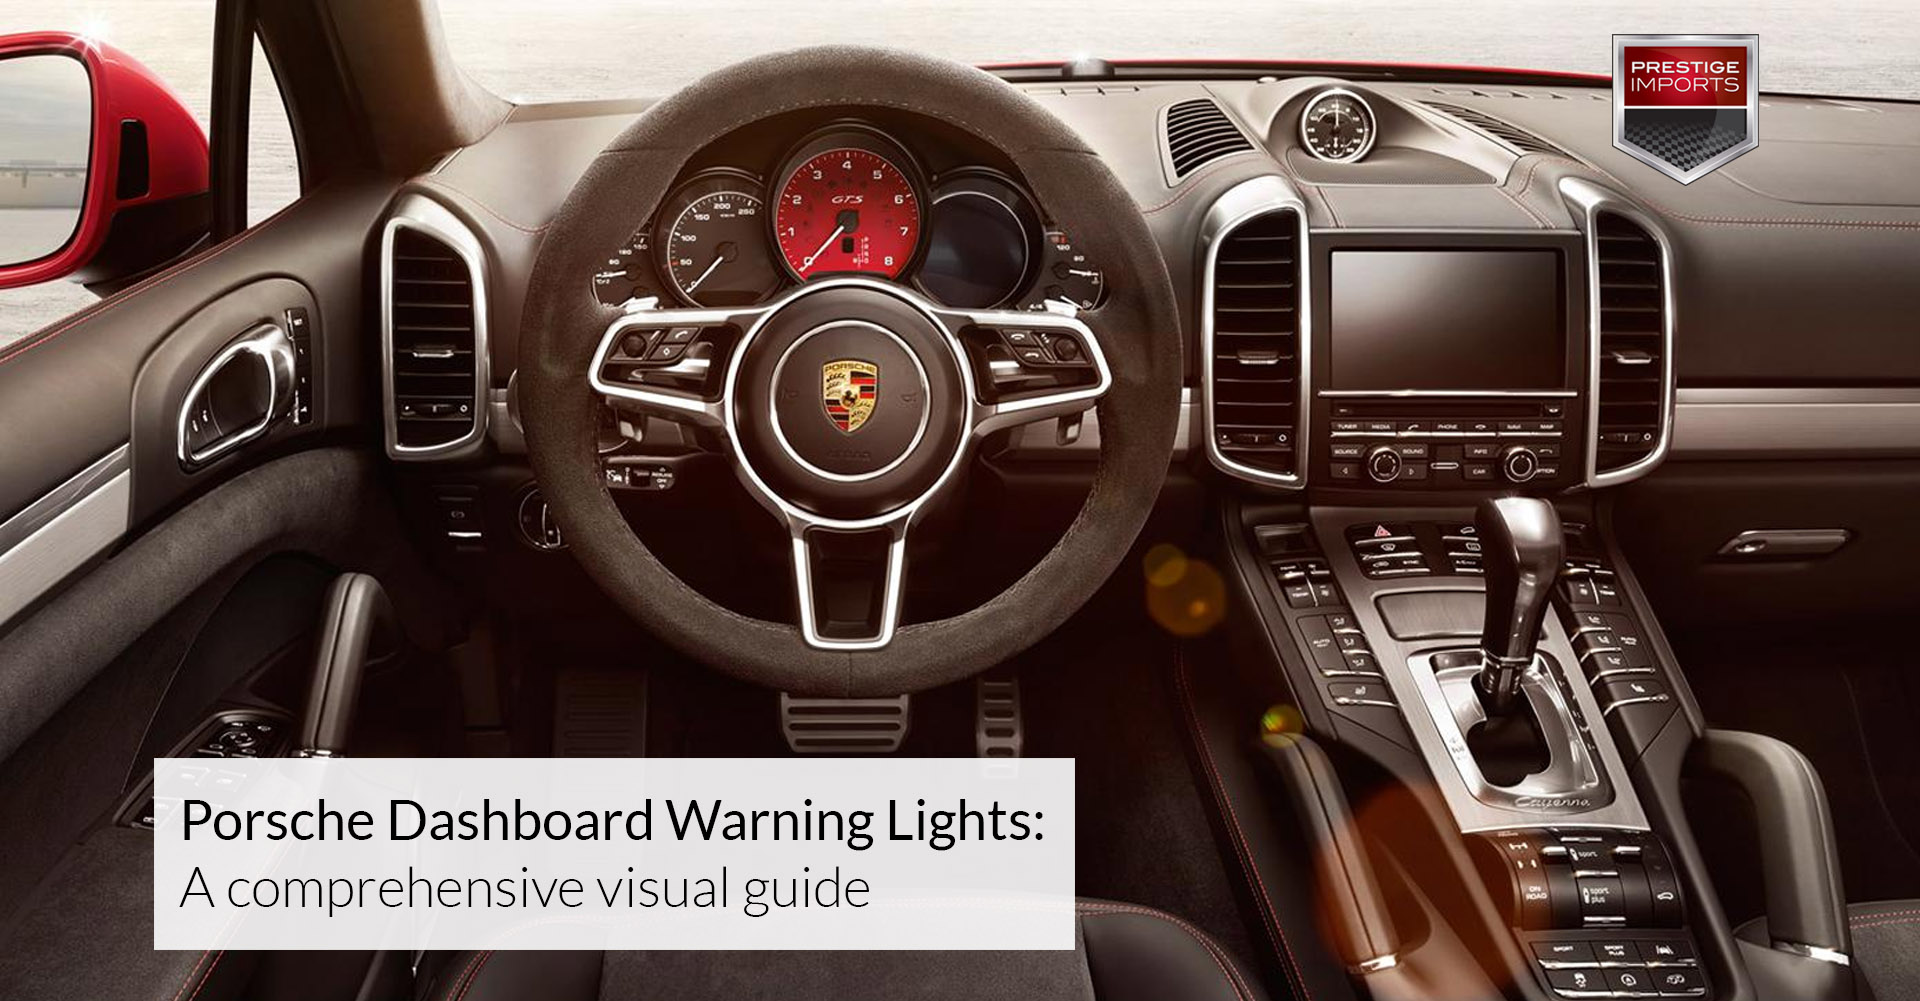 porsche dashboard warning lights a comprehensive visual guide 02 A6 porsche dashboard warning lights a comprehensive visual guide ?